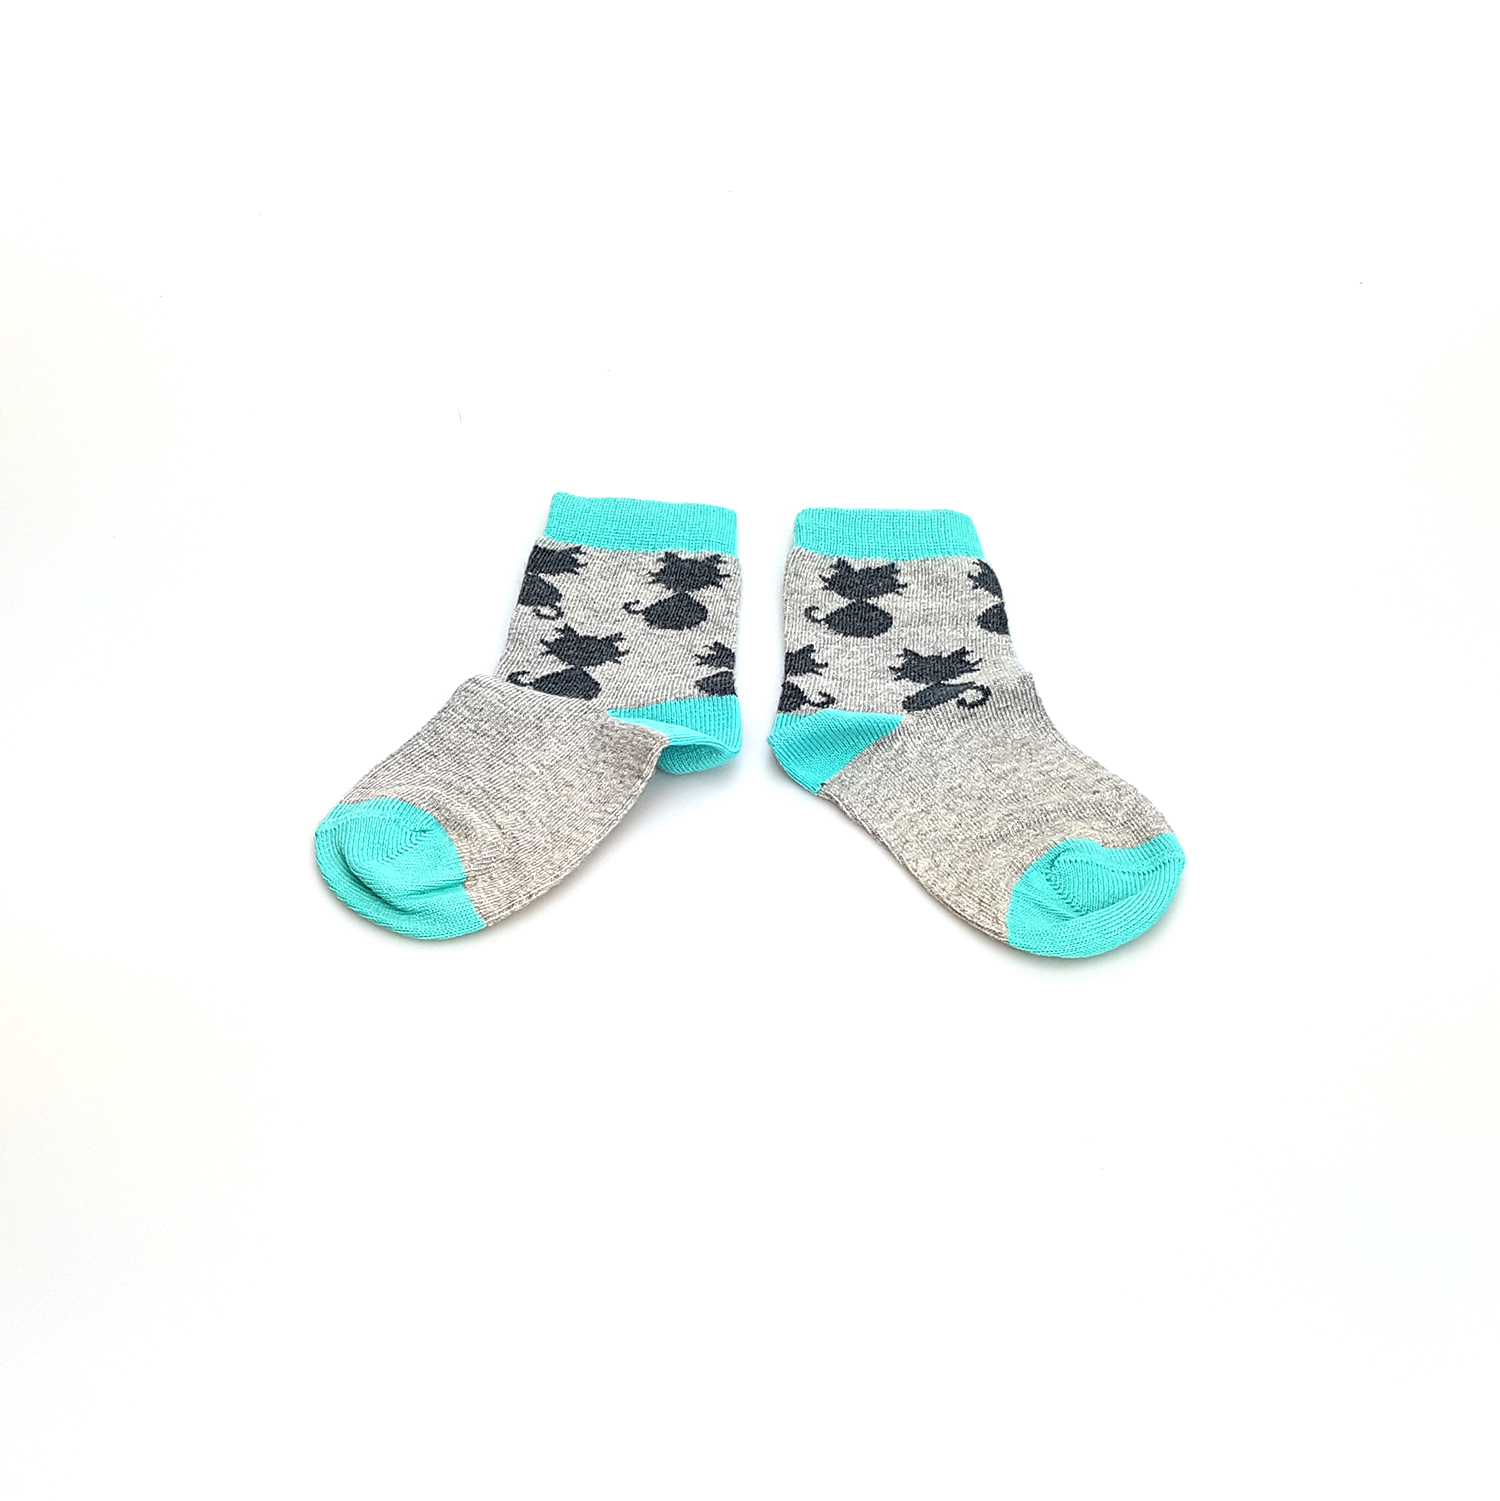 Customized Baby and Kids' socks with company logo